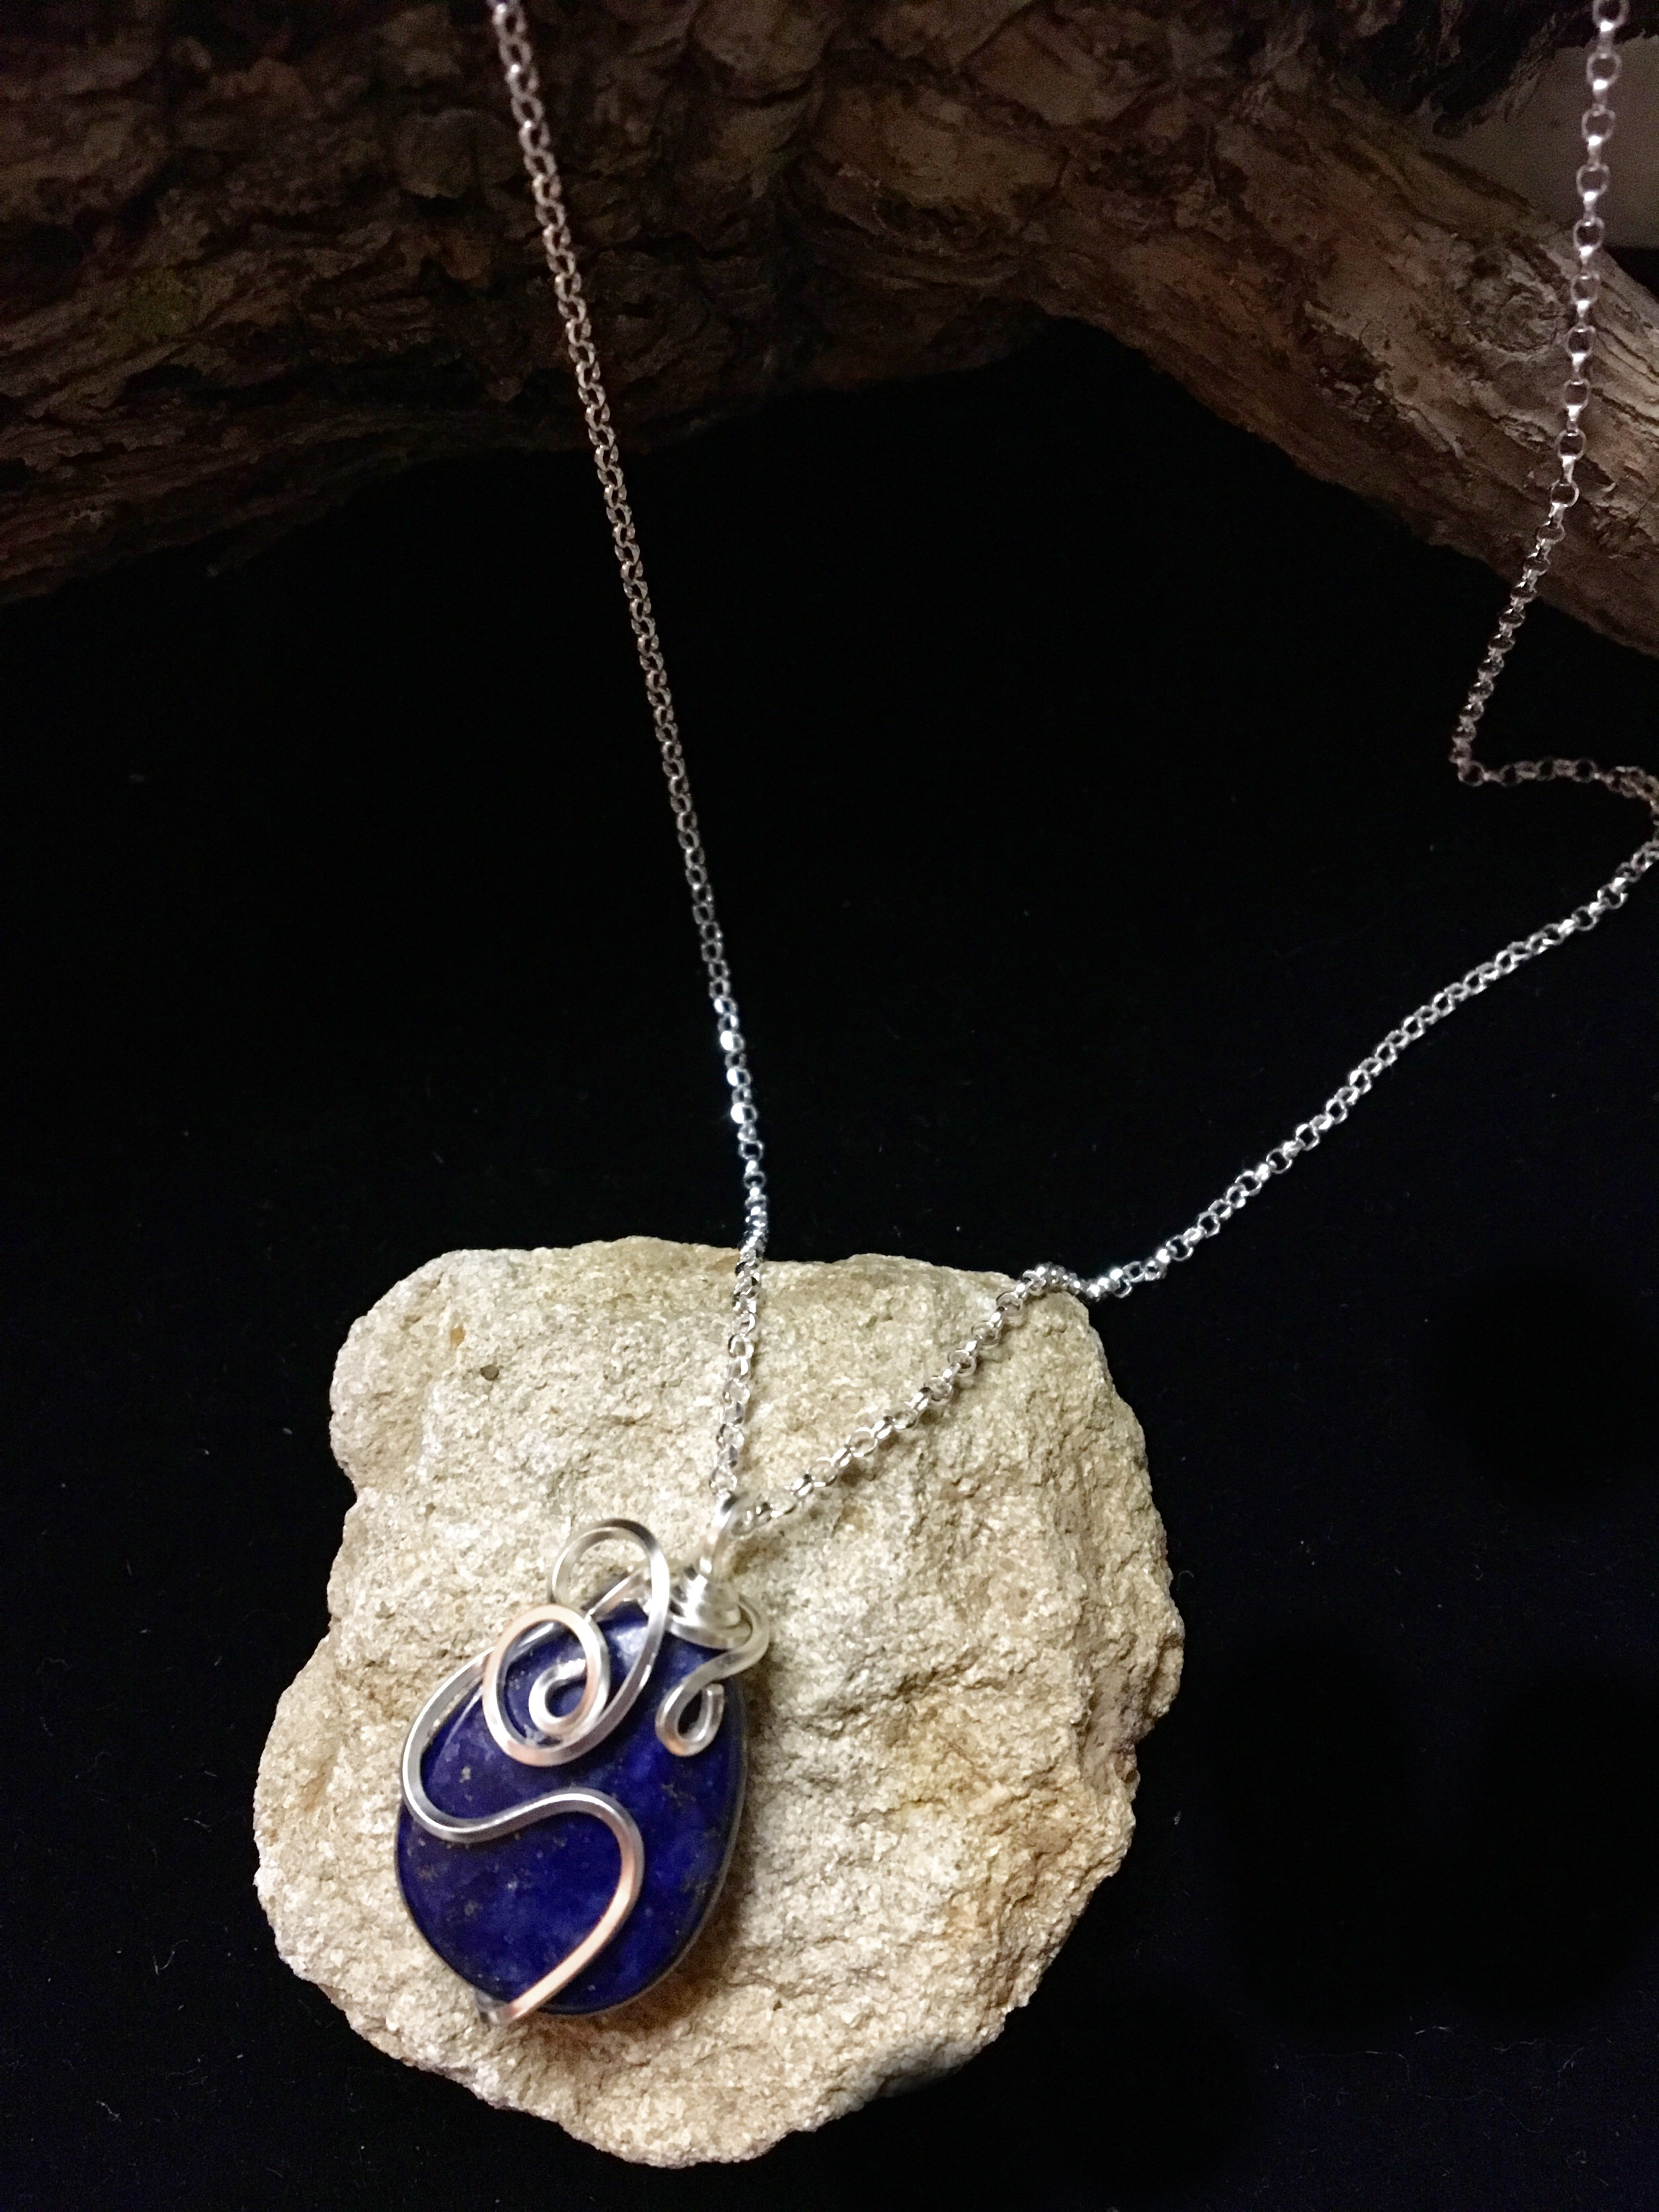 Qhresnna Quartz Necklace - Lapis Lazuli - Silver Plated and Sterling Chain